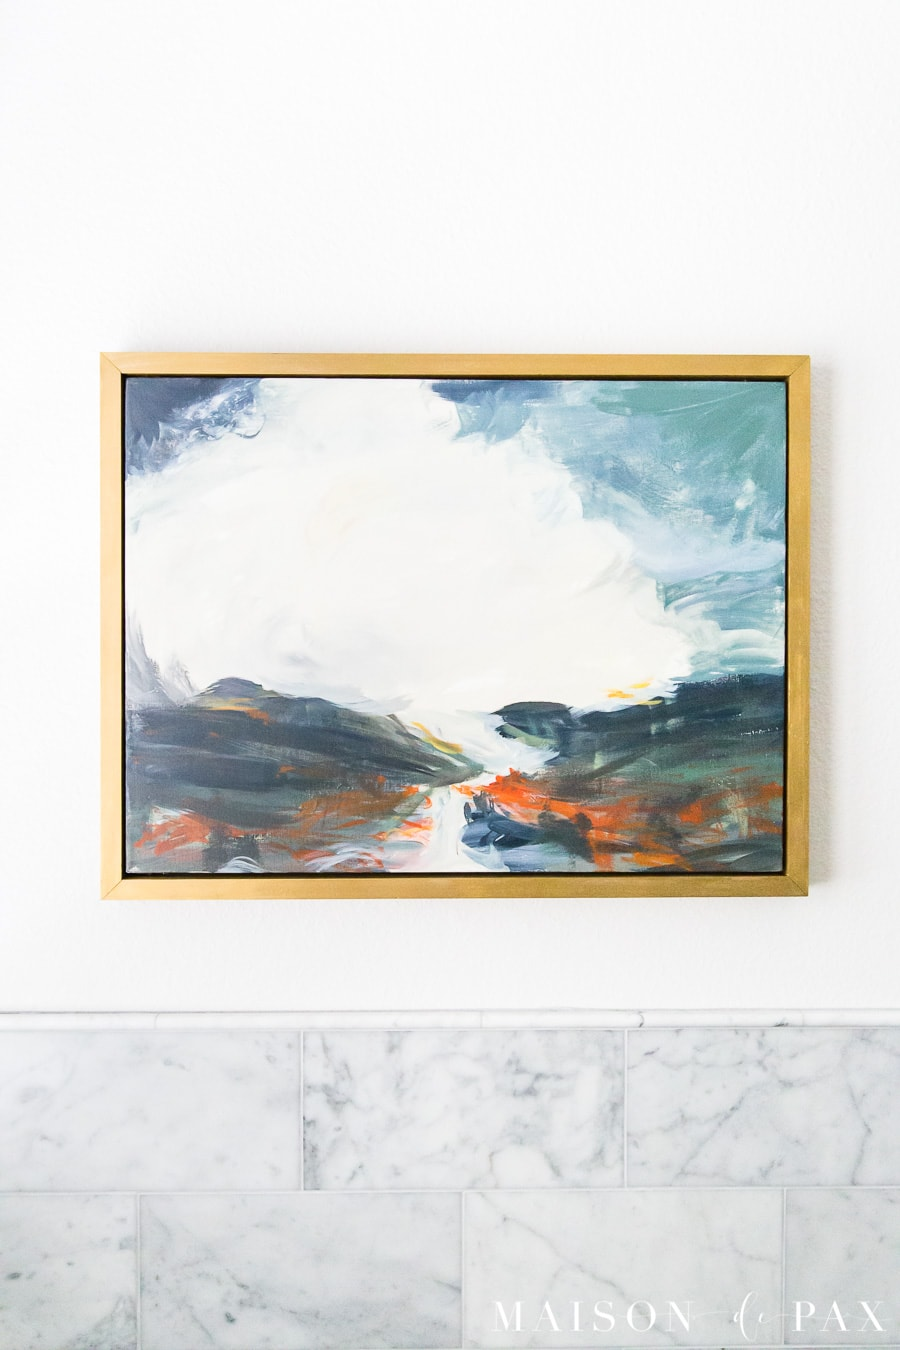 abstract landscape art in blues and greens and reds with gold frame | Maison de Pax